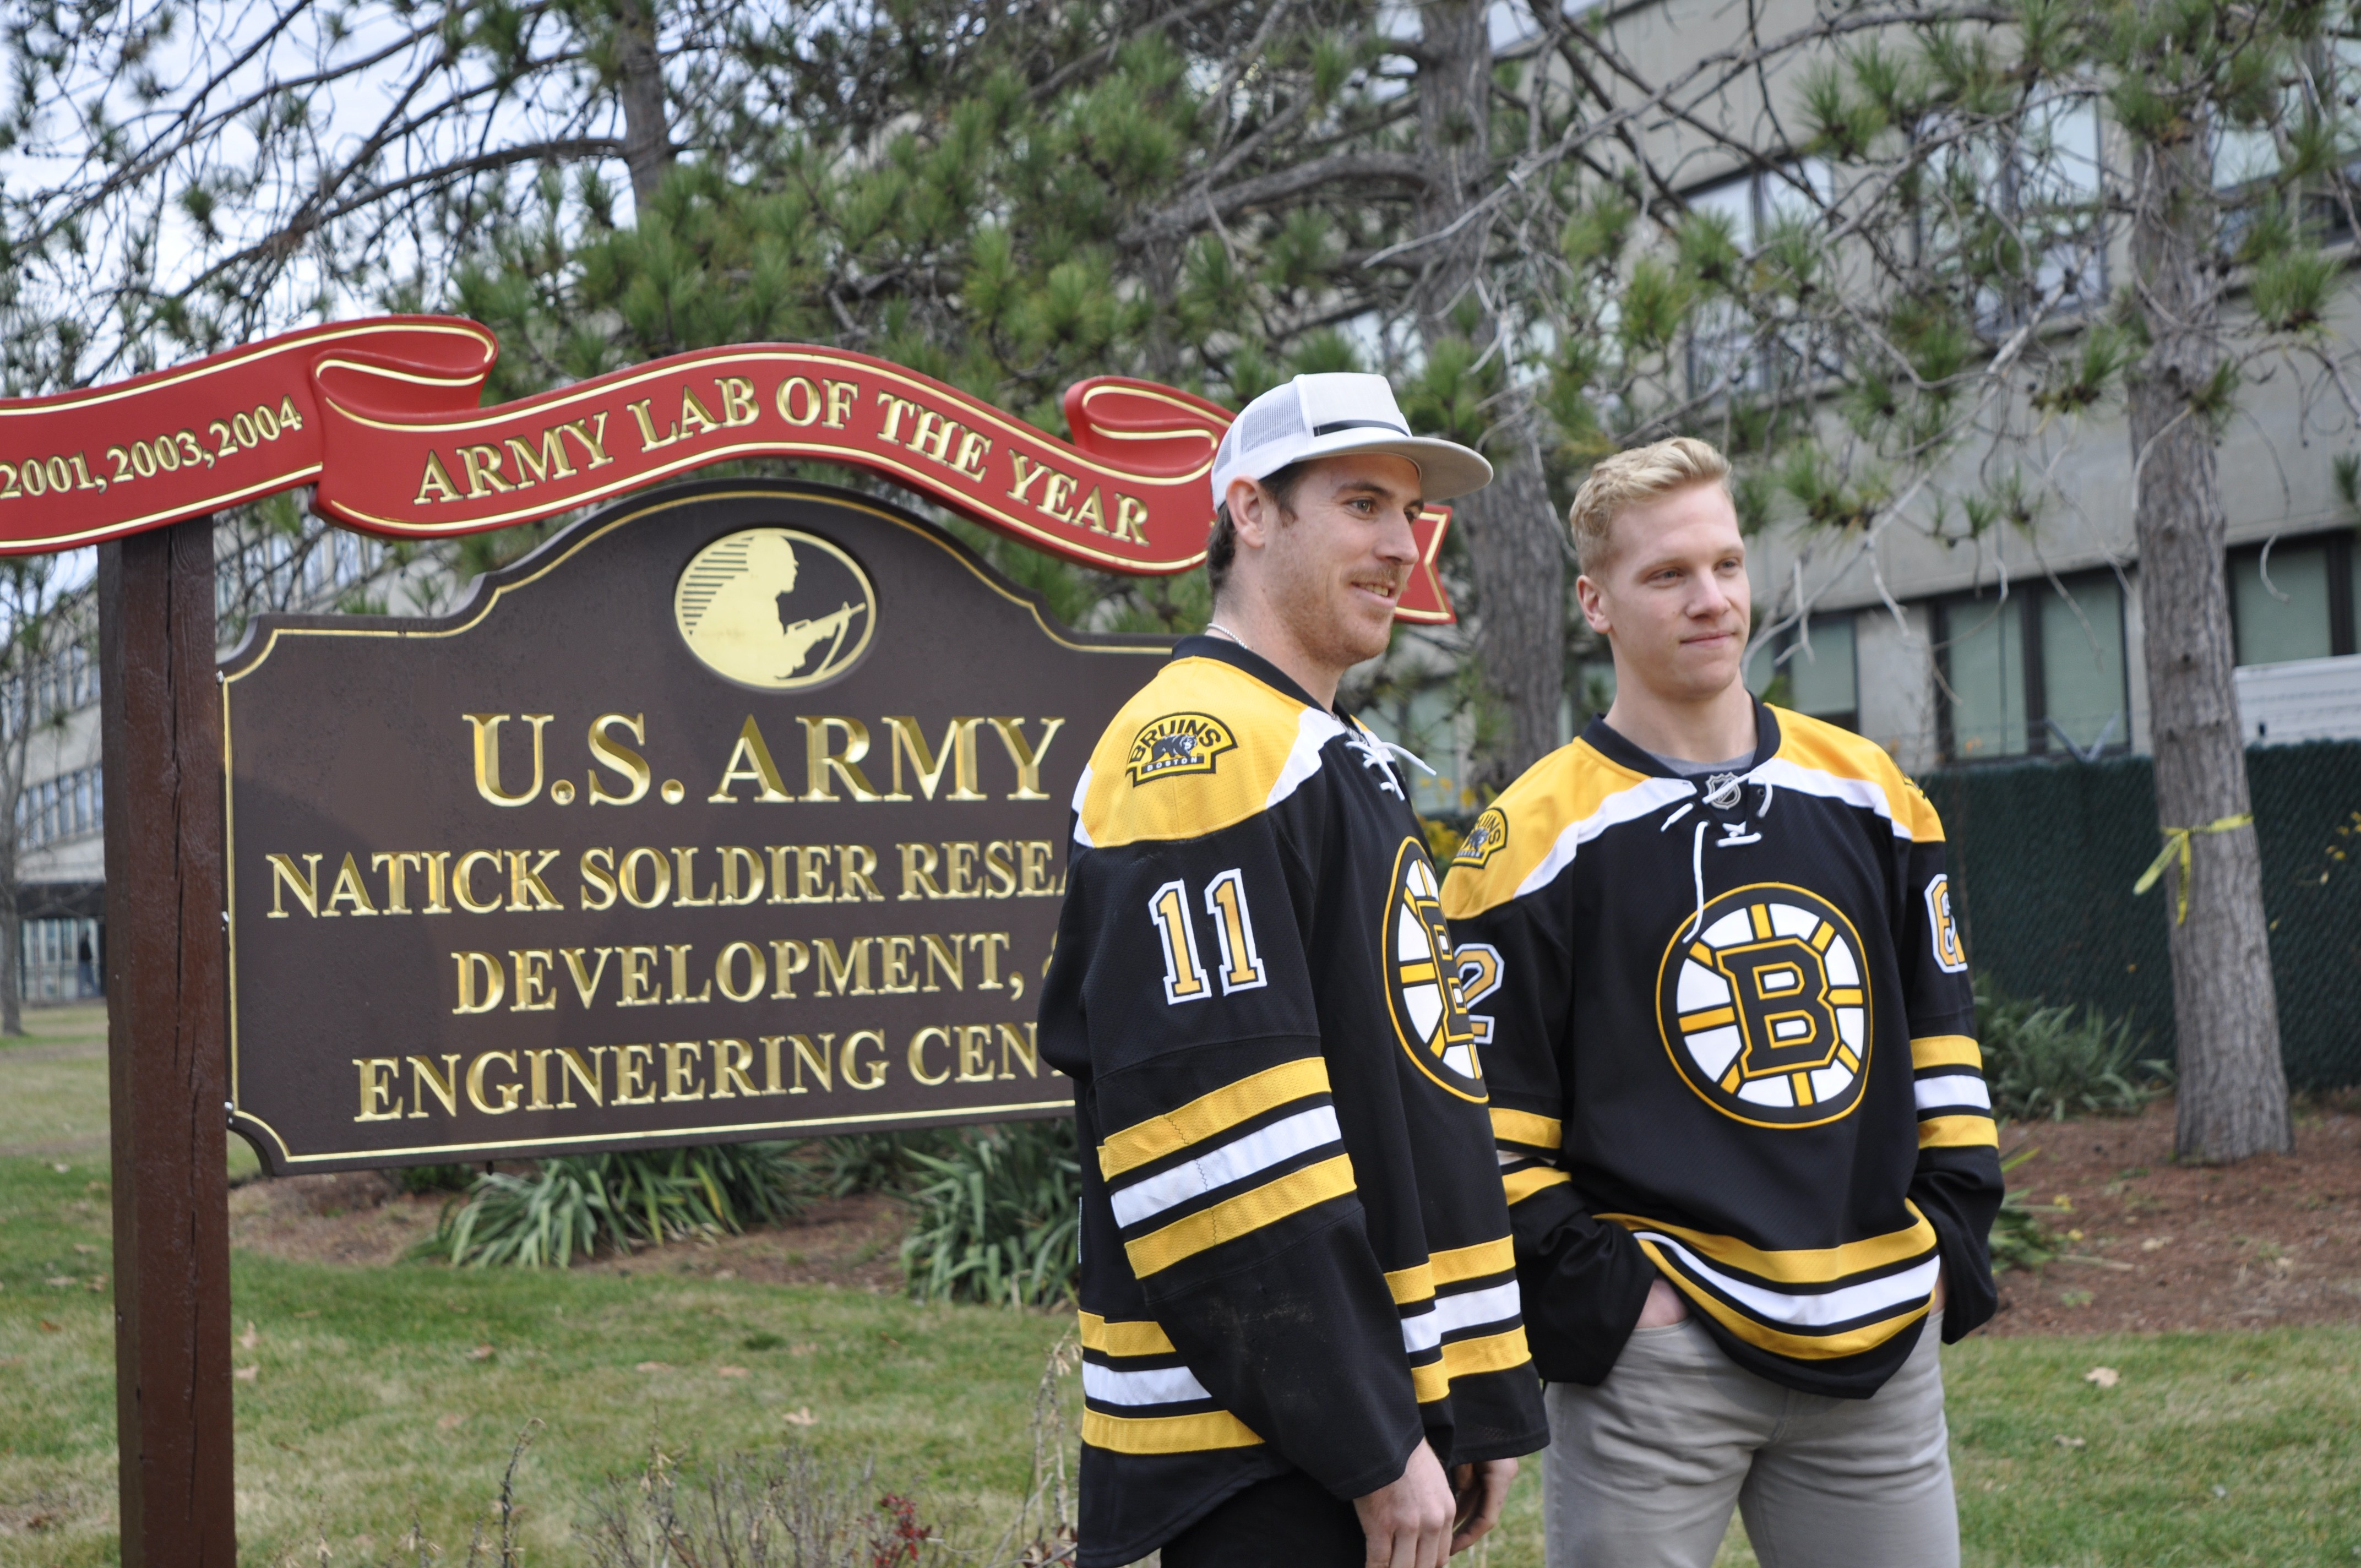 Nsrdec Soldiers And Veterans Score A Visit From Boston Bruins